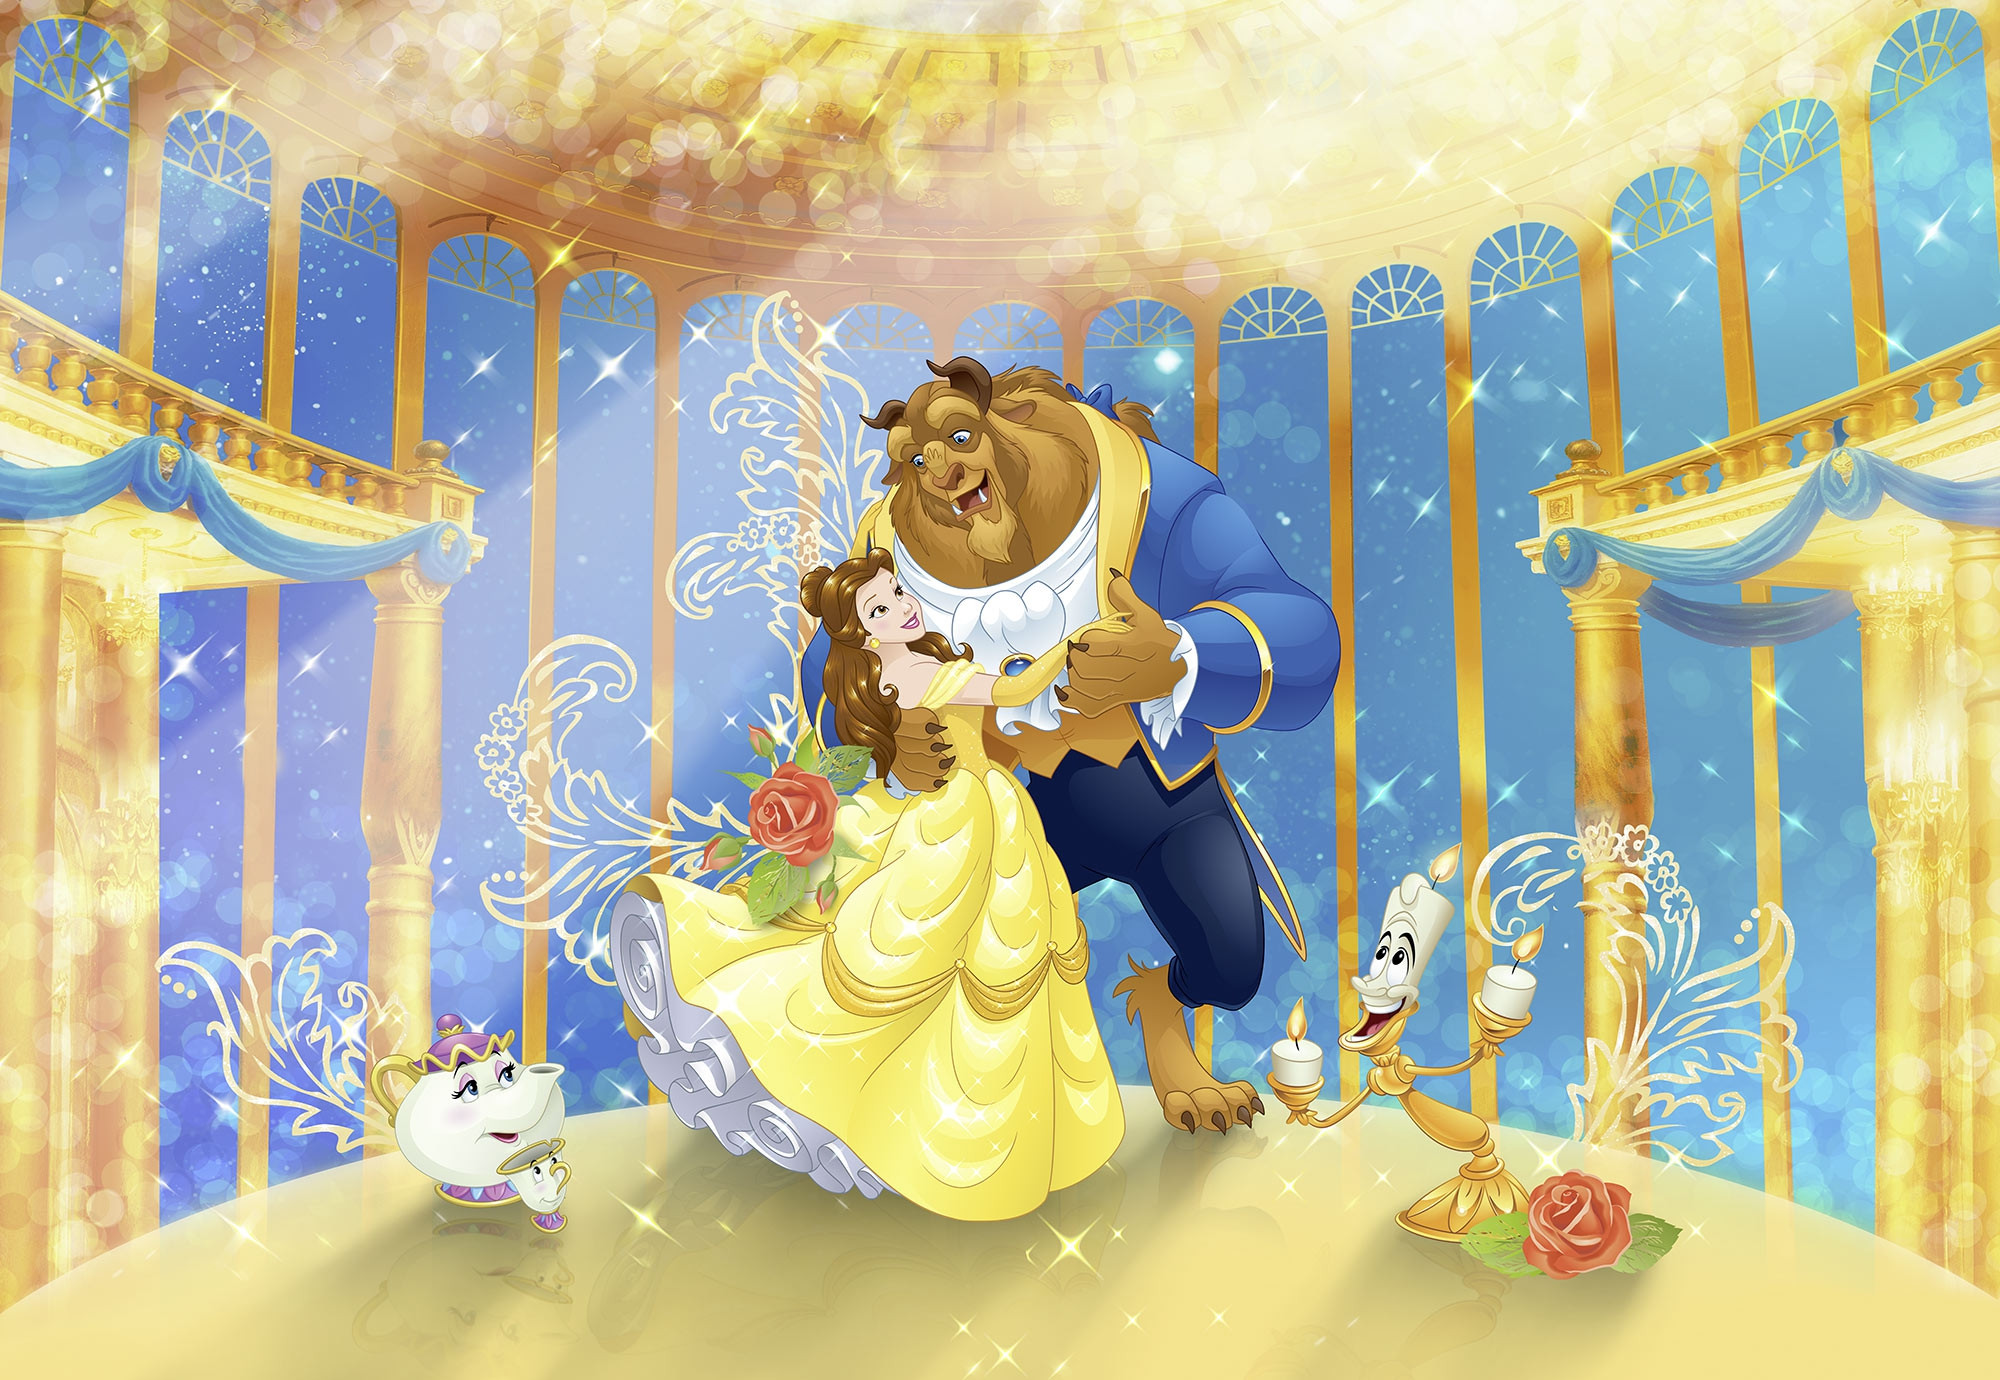 Photomural Beauty And The Beast 8 4022 From Komar Disney